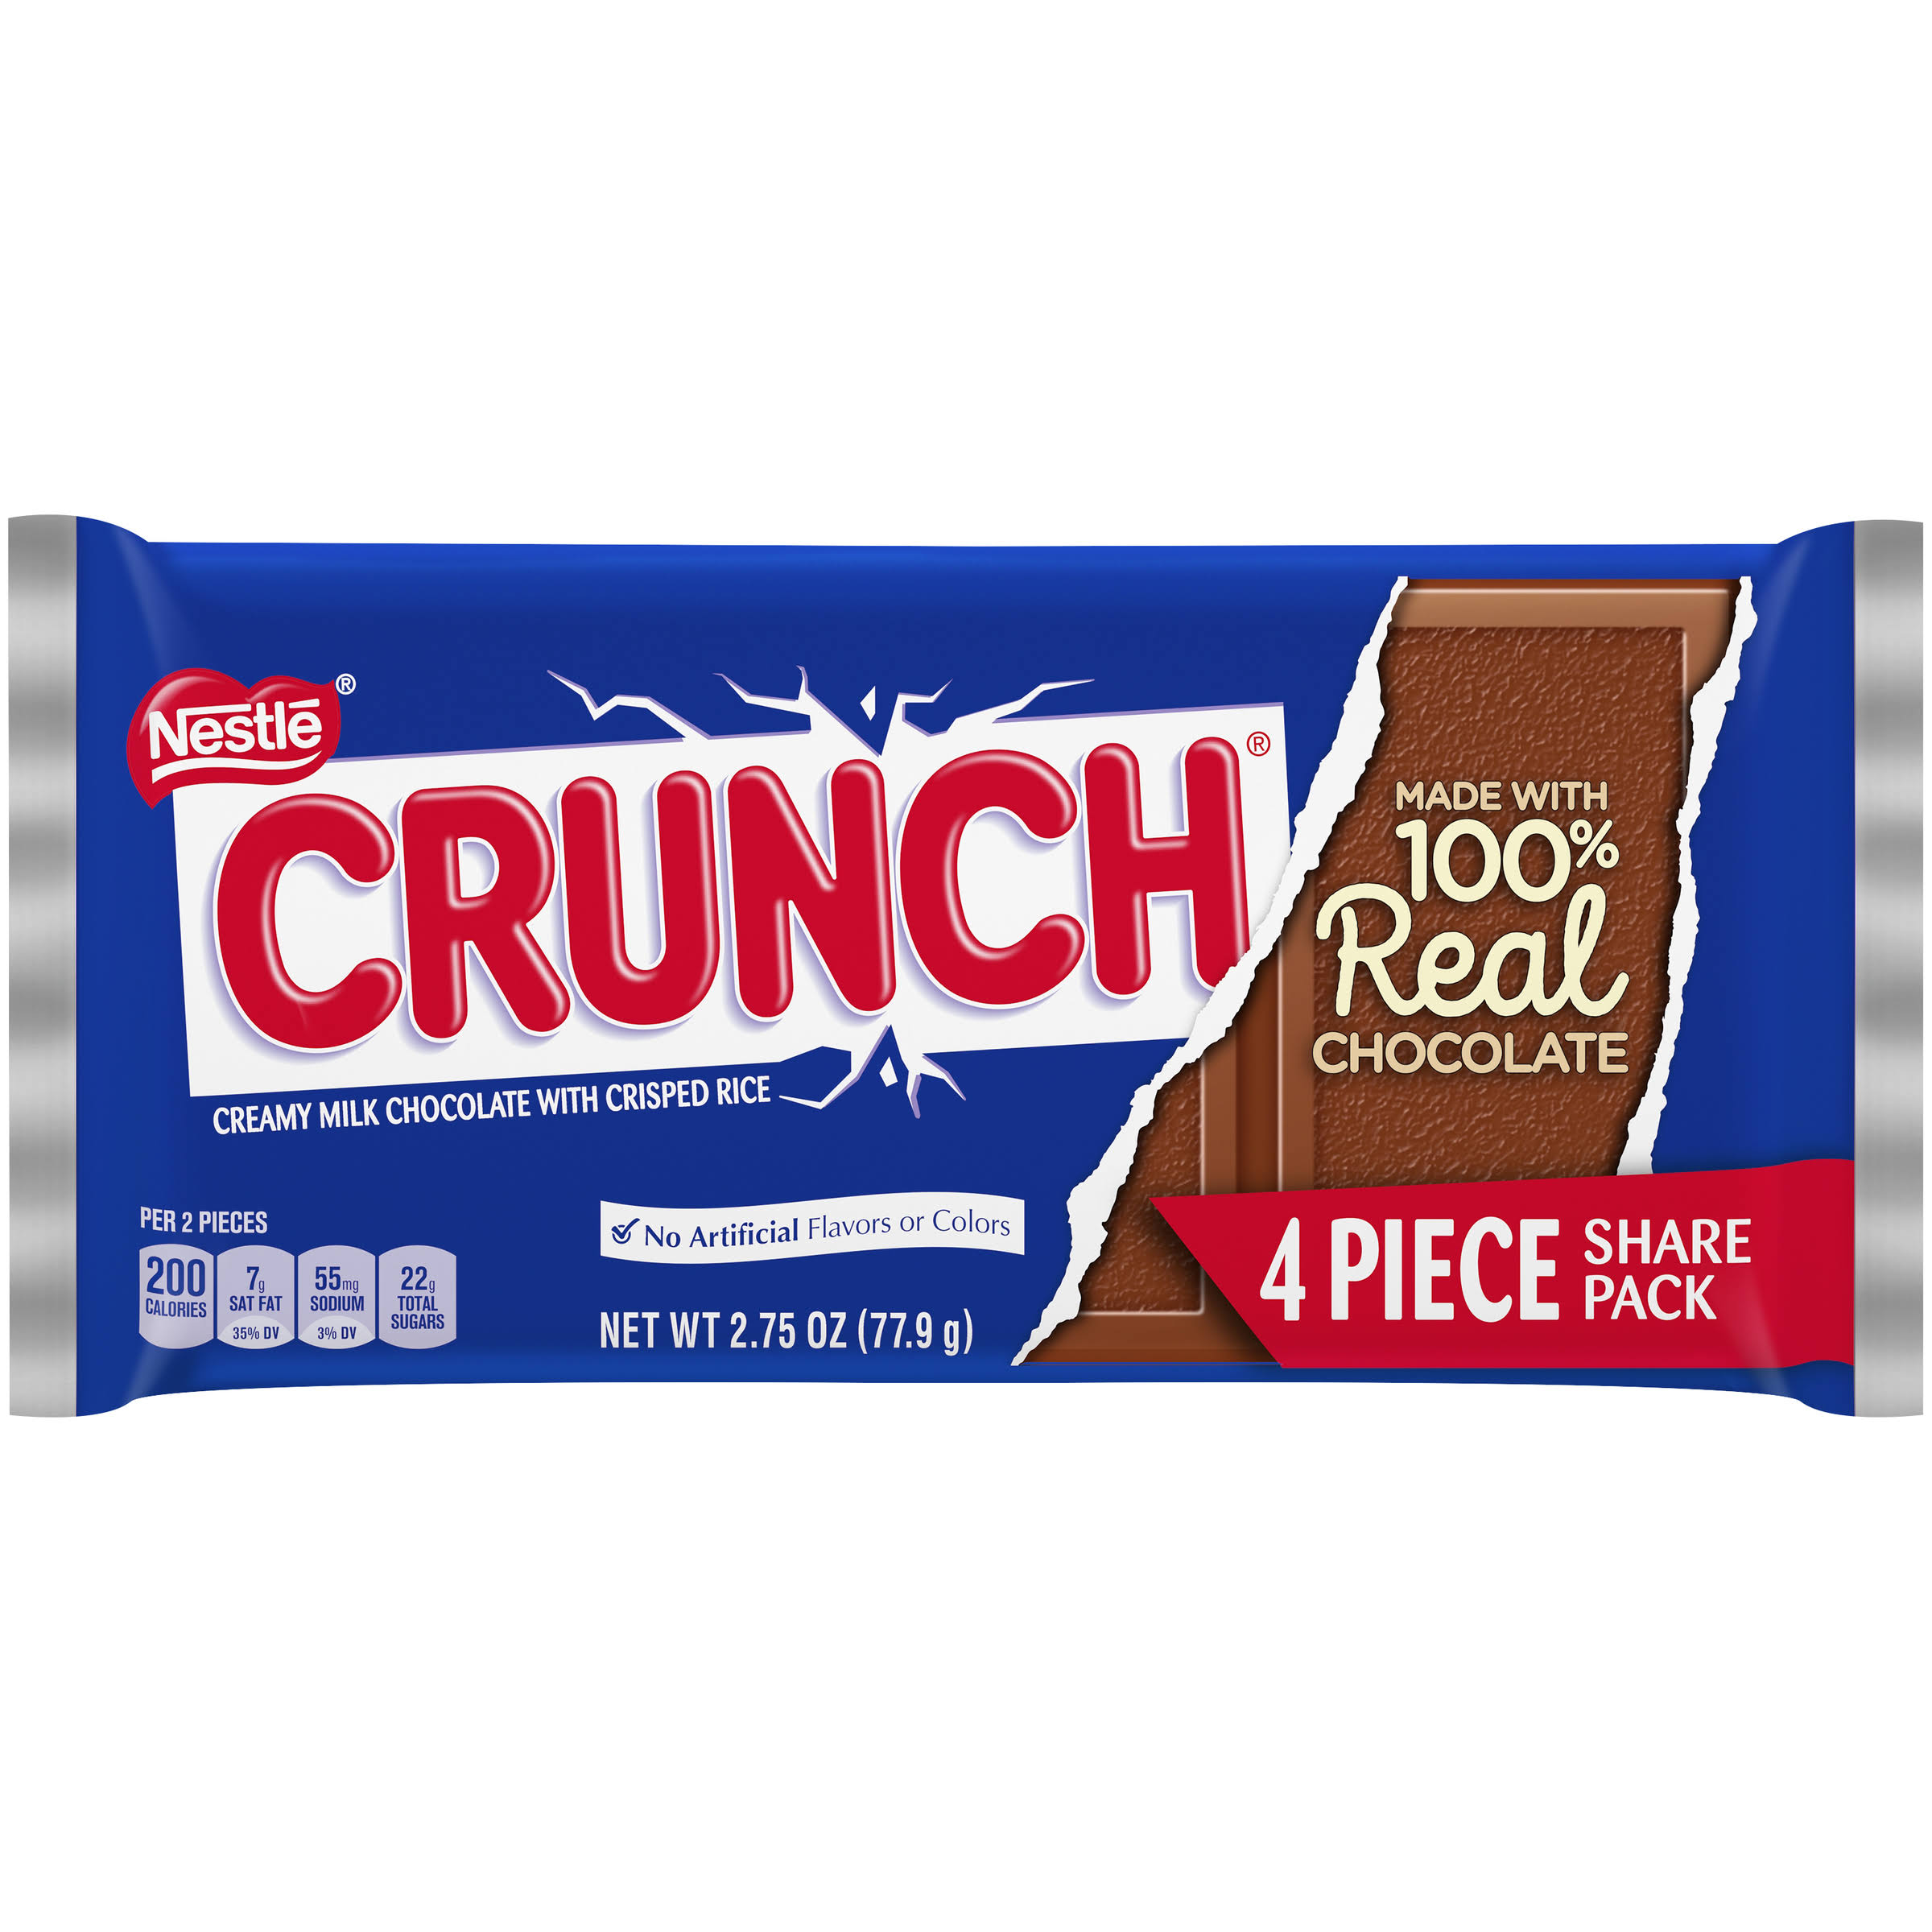 Crunch Milk Chocolate Creamy, With Crisped Rice